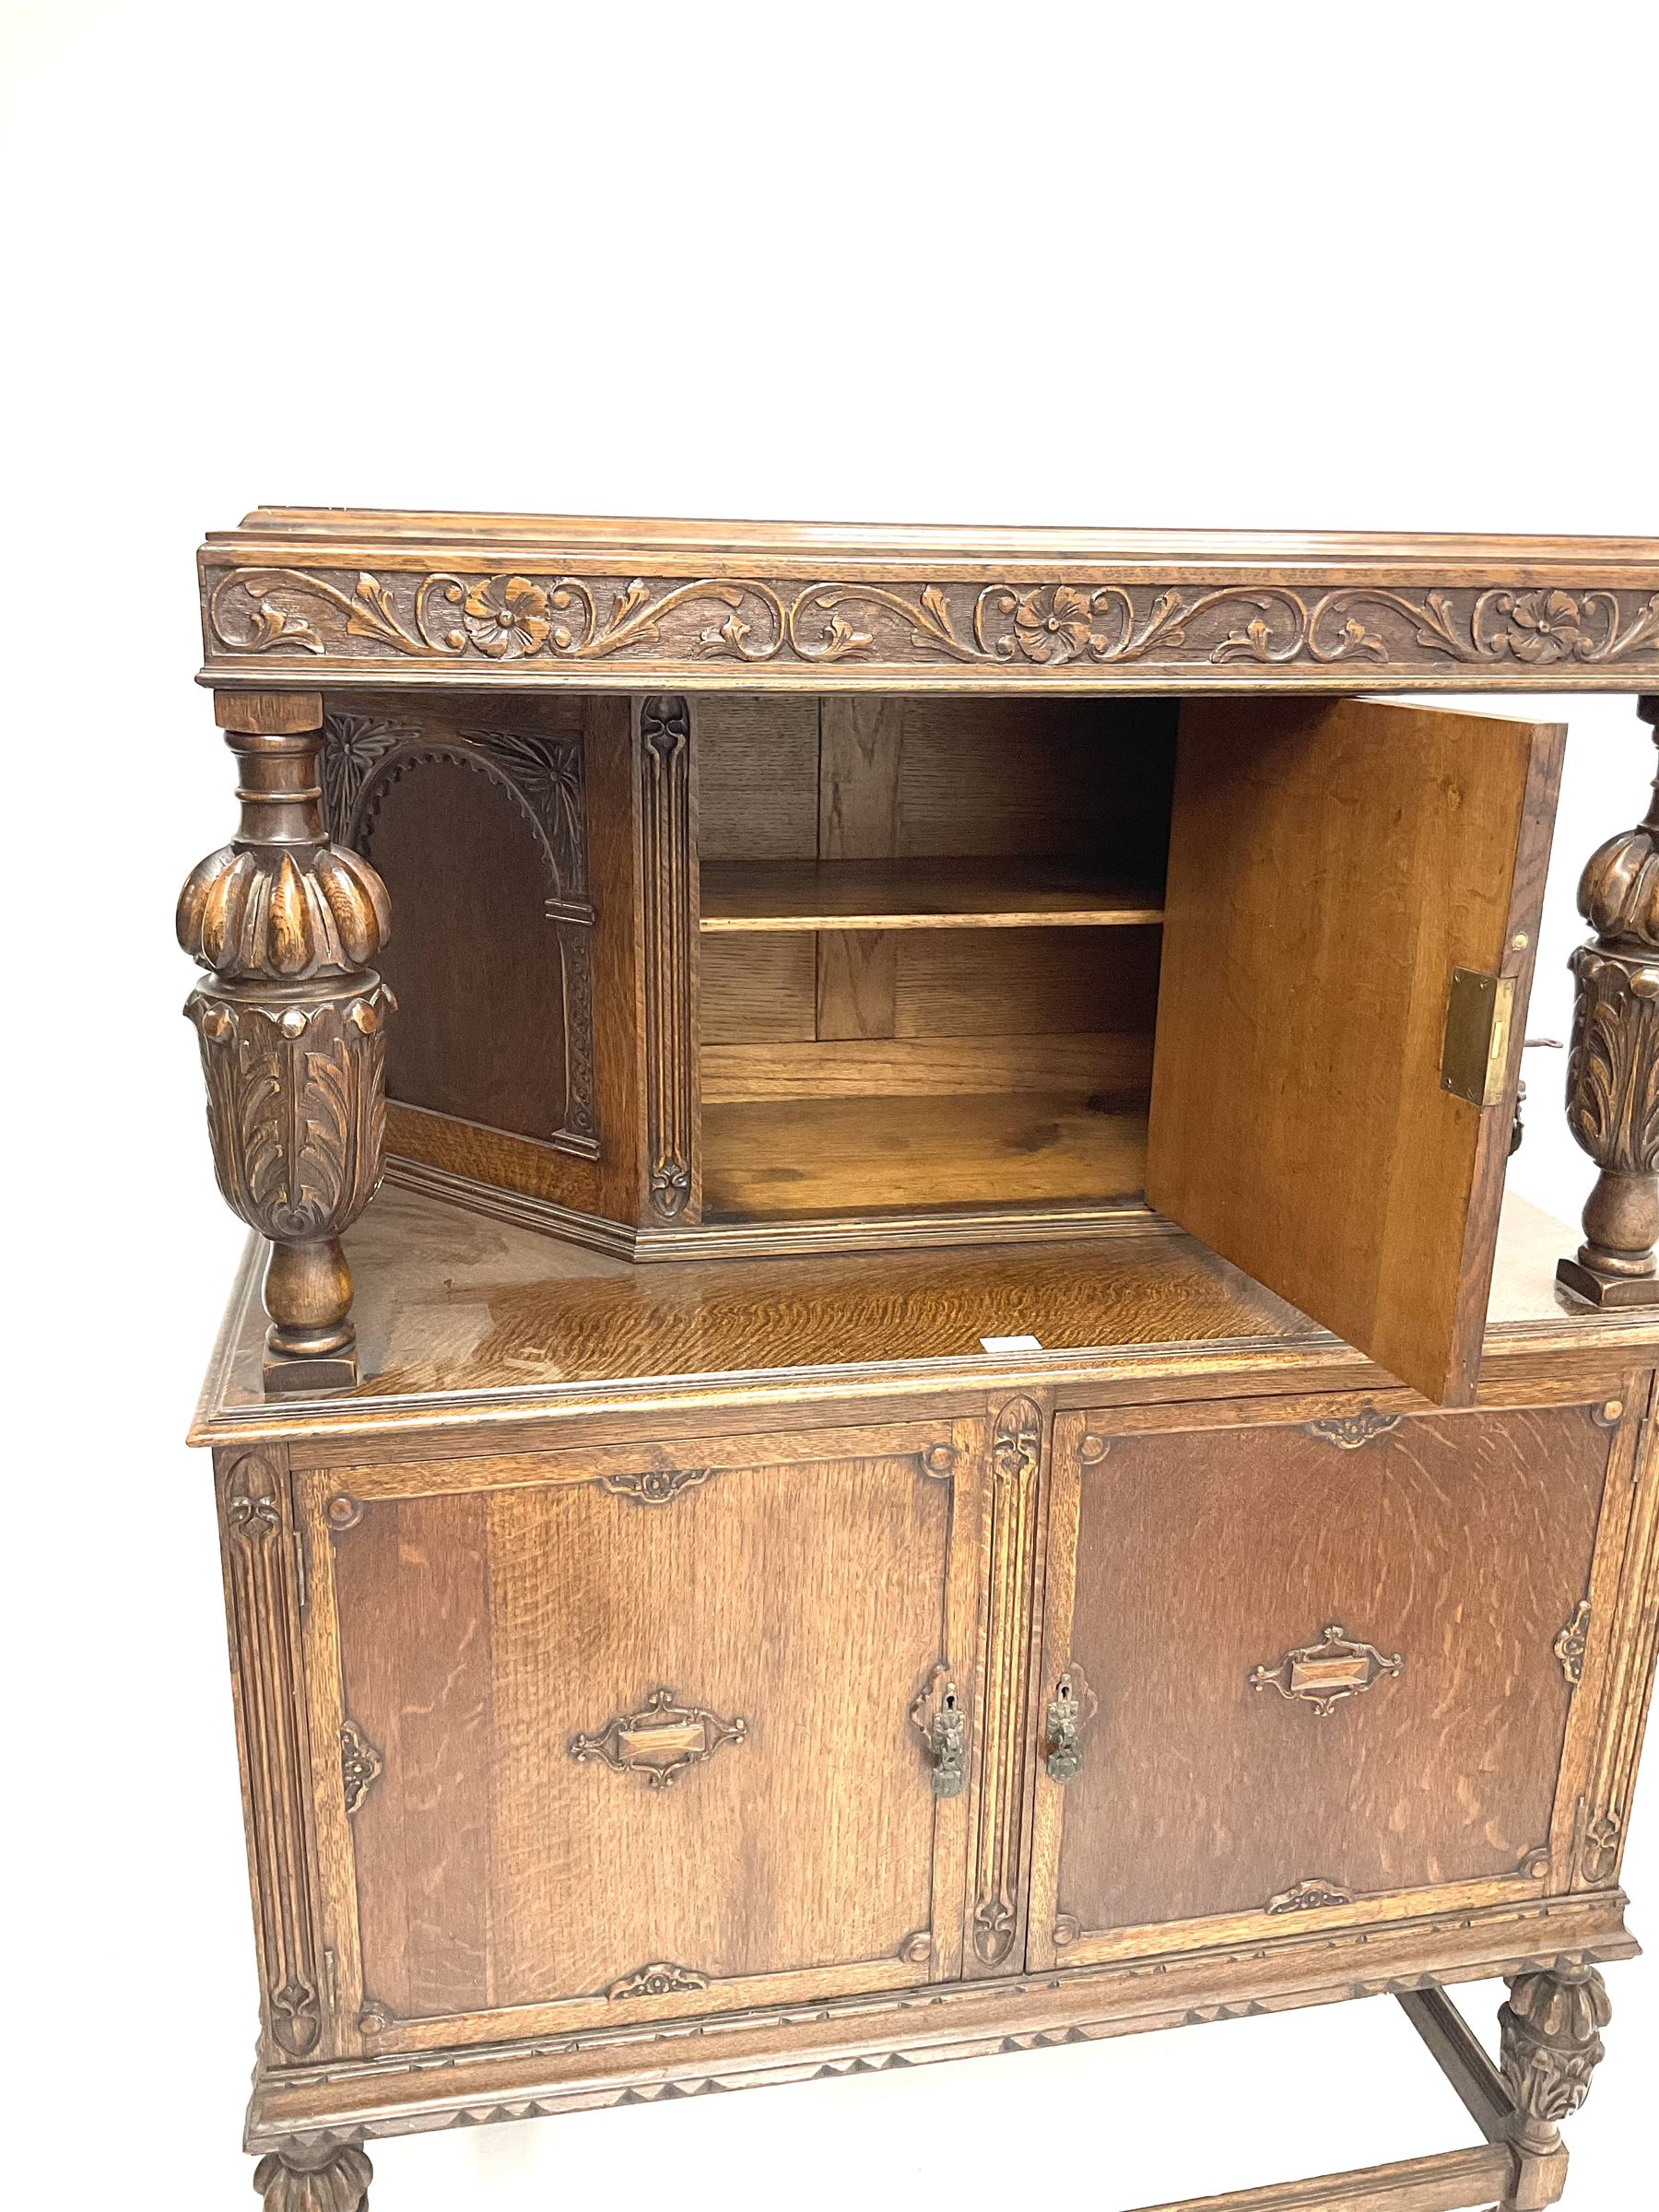 Early 20th century carved oak court cupboard fitted with single cupboard above double cupboard doors - Image 3 of 4